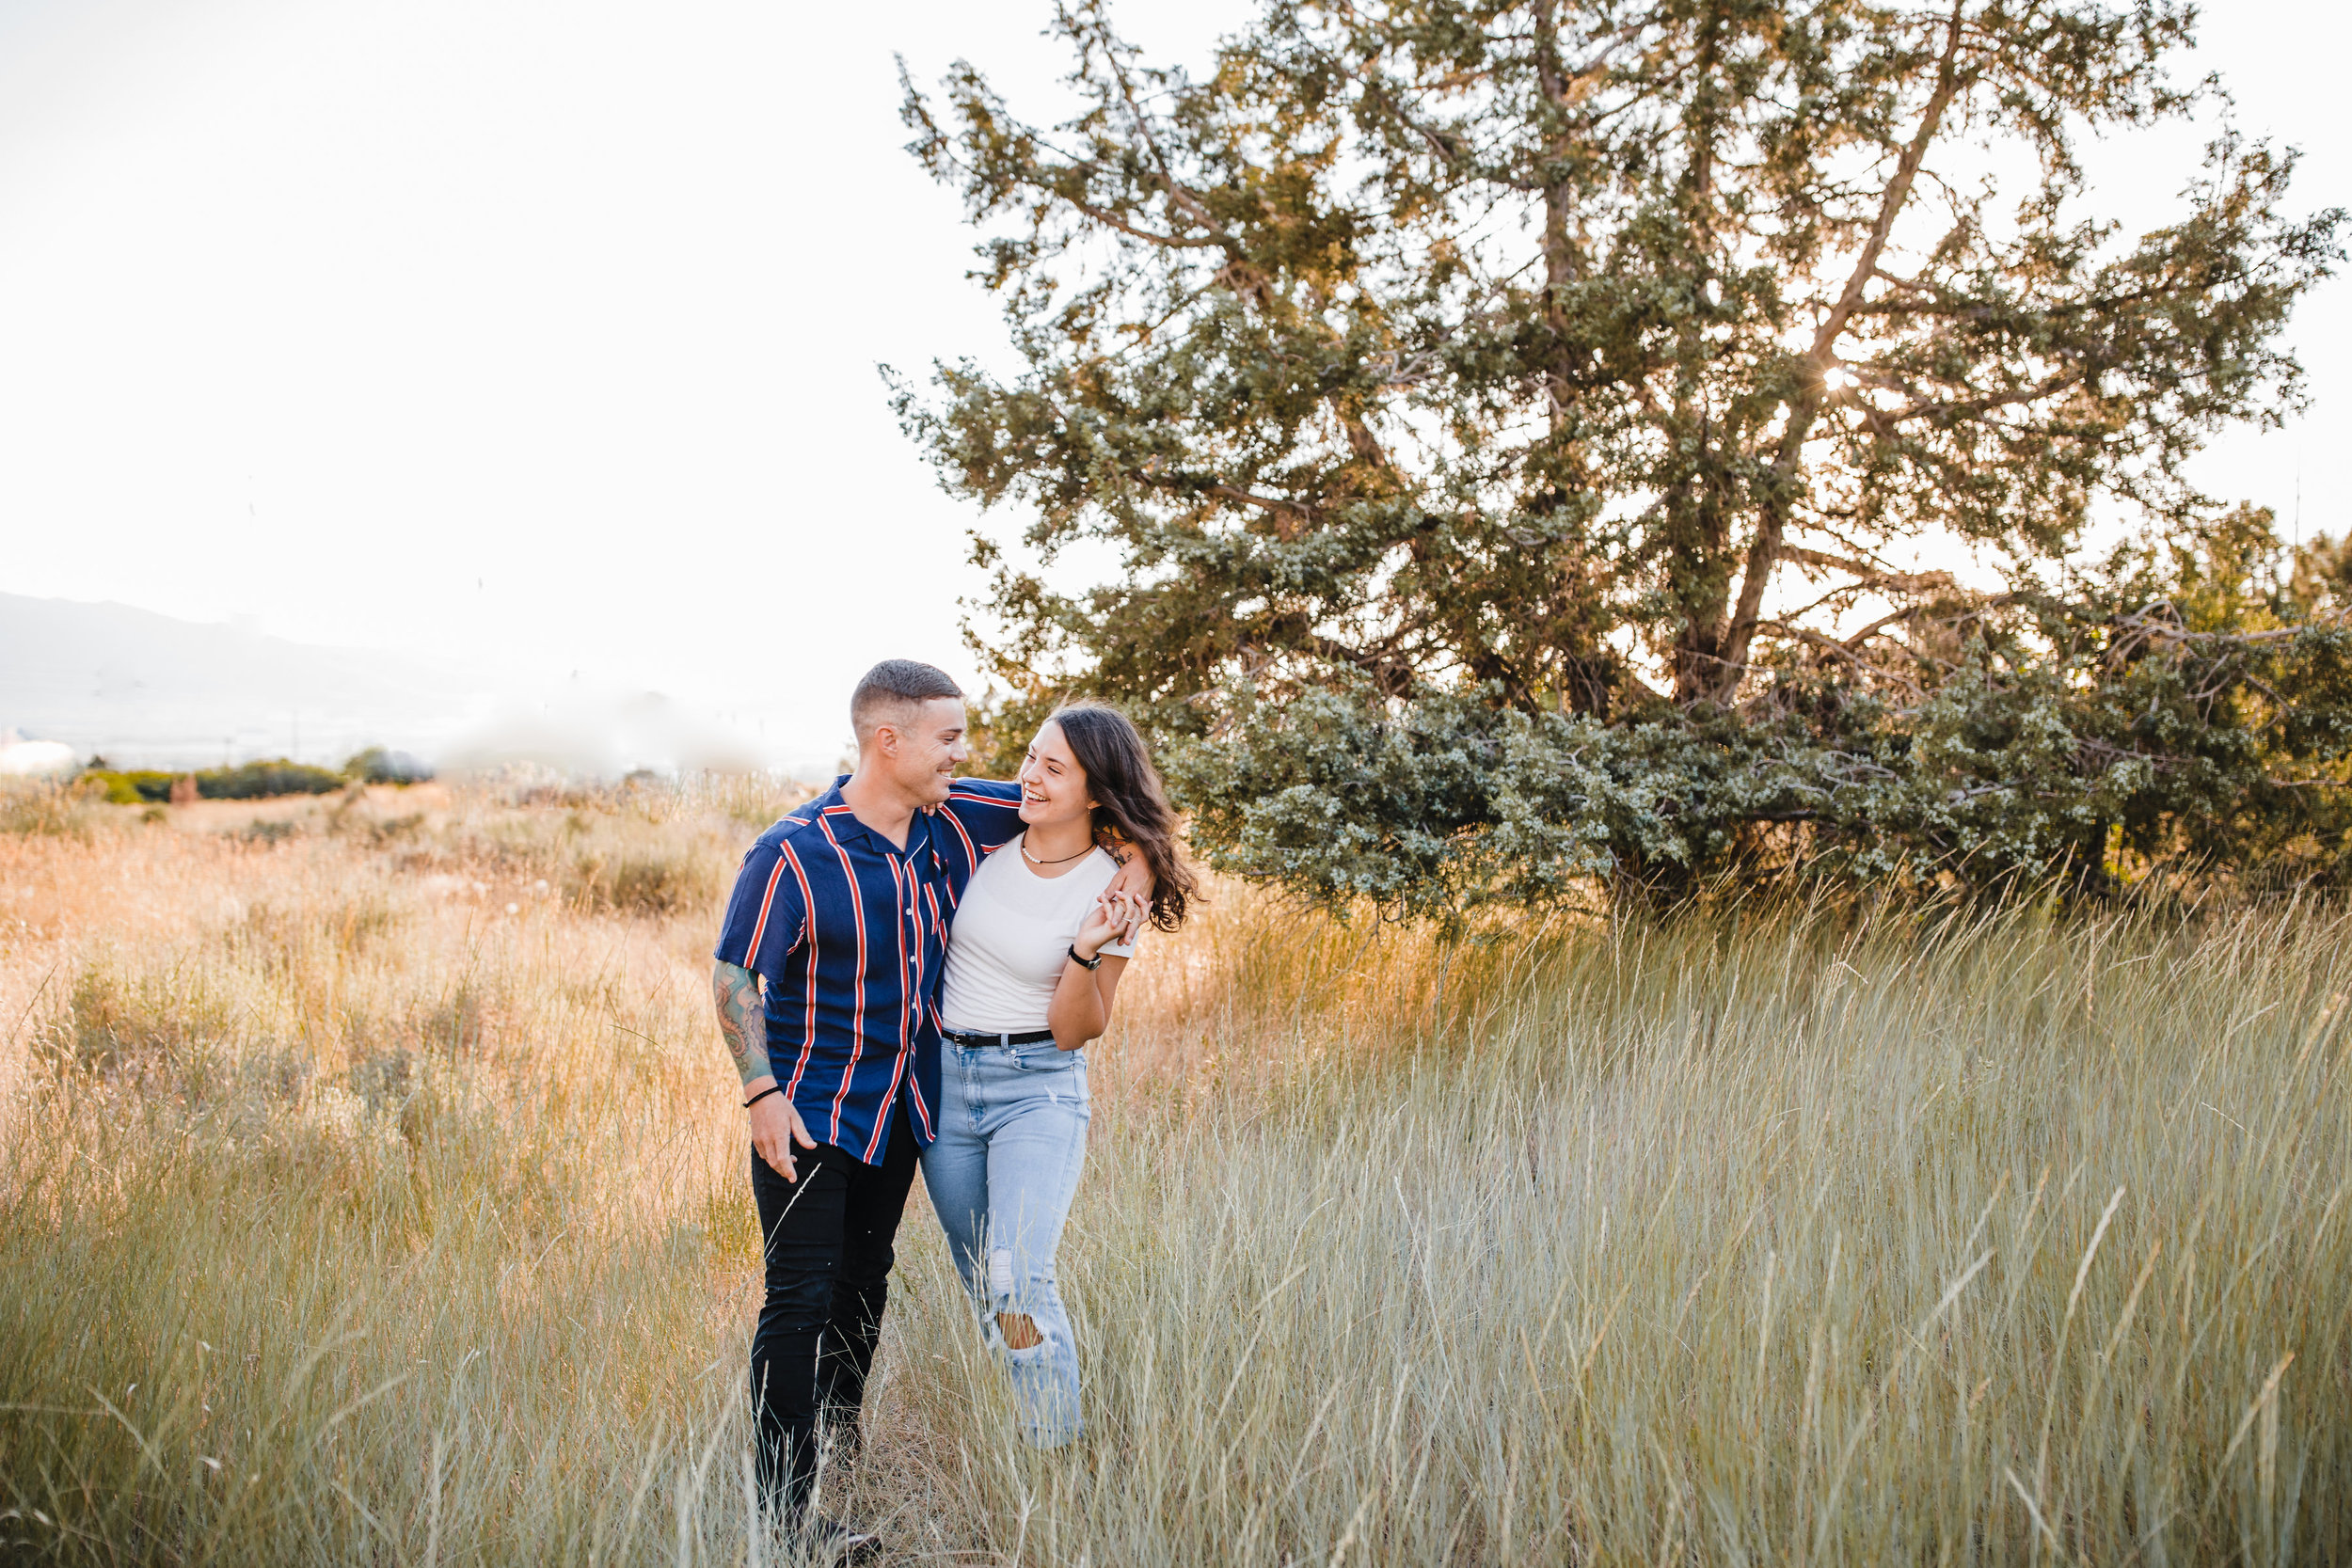 cache valley engagement photographer mountains fields hugging laughing